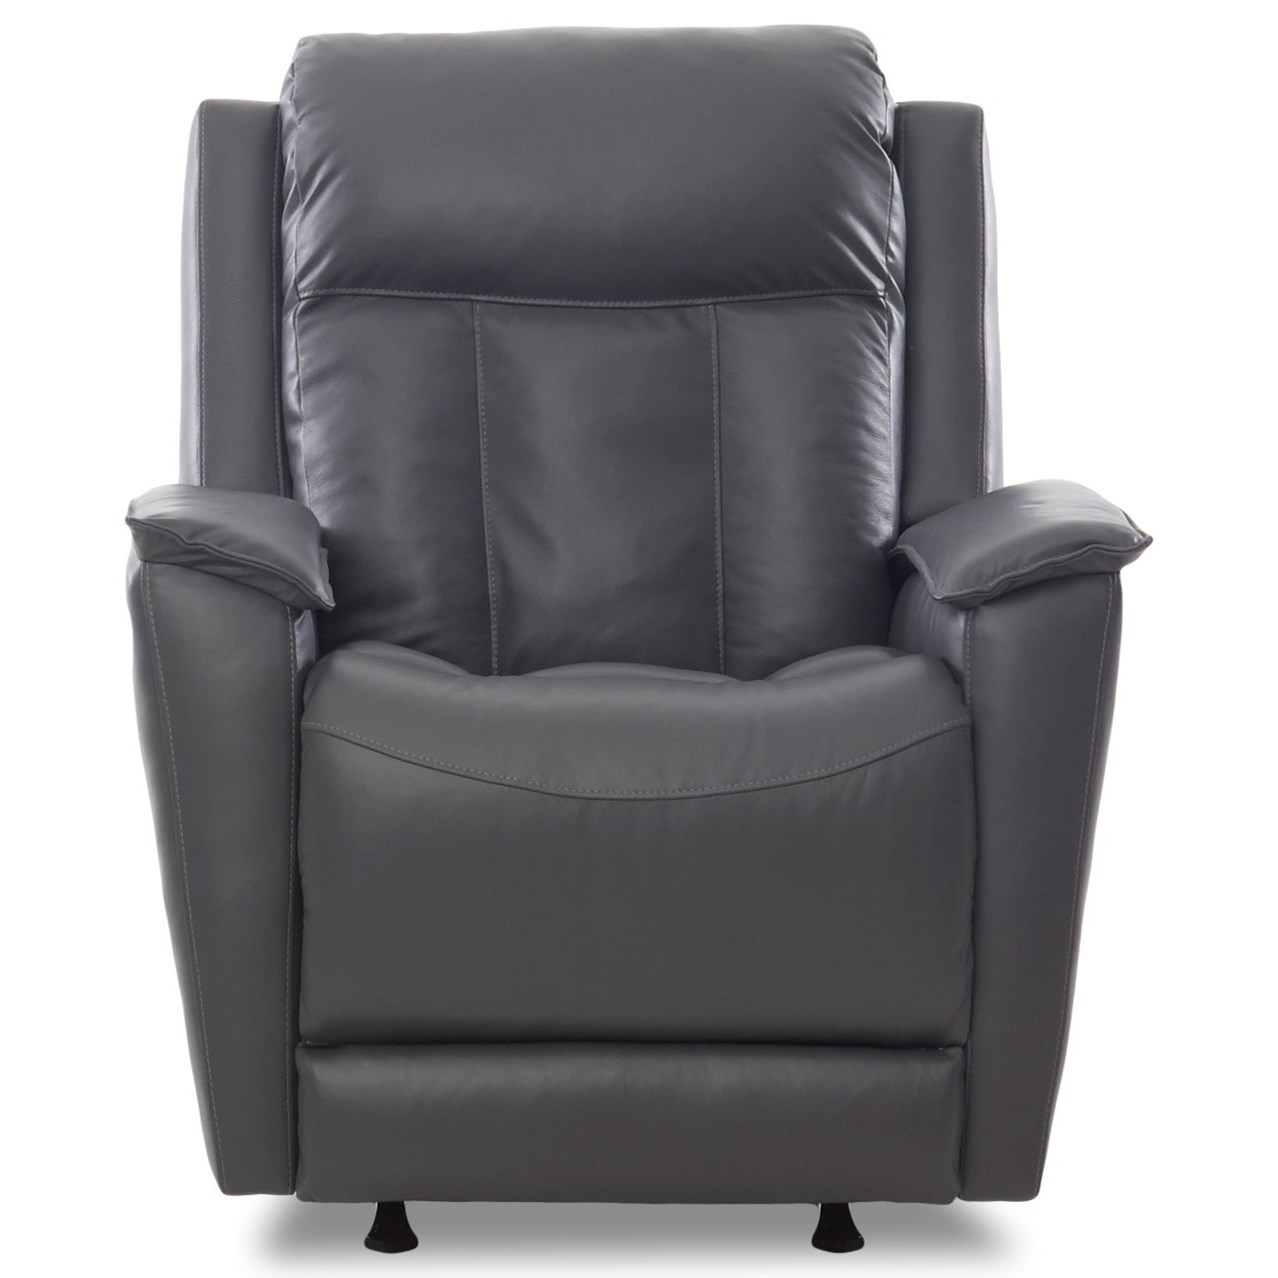 Grant Recliner by Klaussner at Catalog Outlet